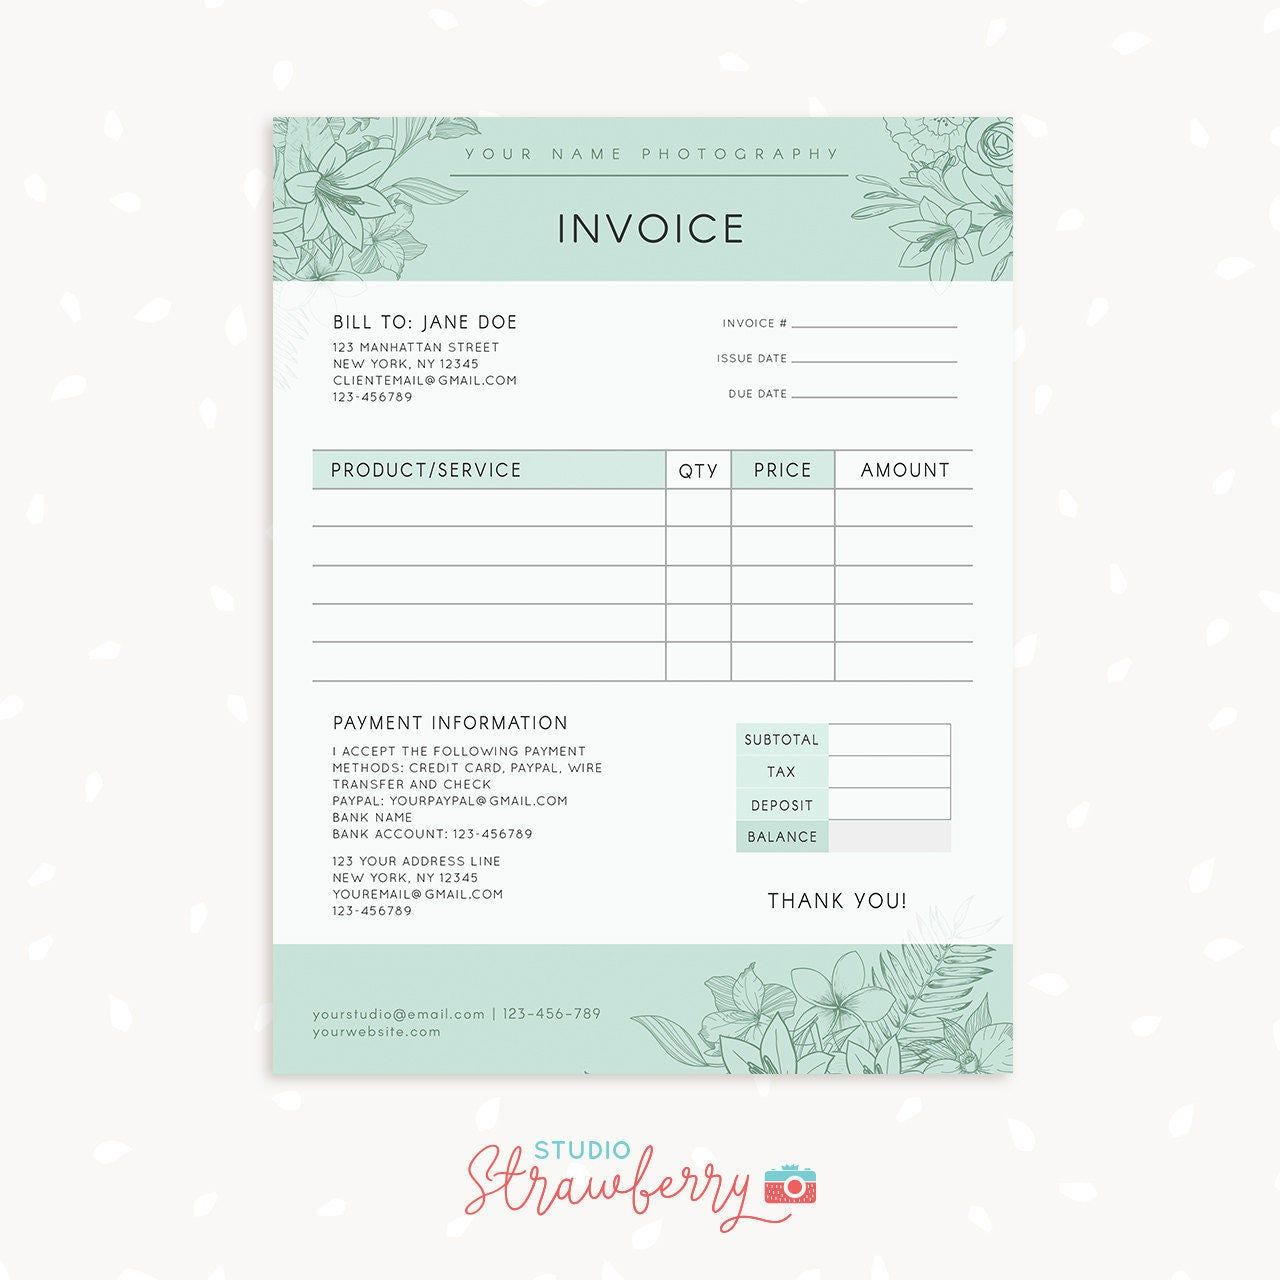 Invoice Template Photography Invoice Business Invoice Etsy Photography Invoice Photography Invoice Template Invoice Design Template